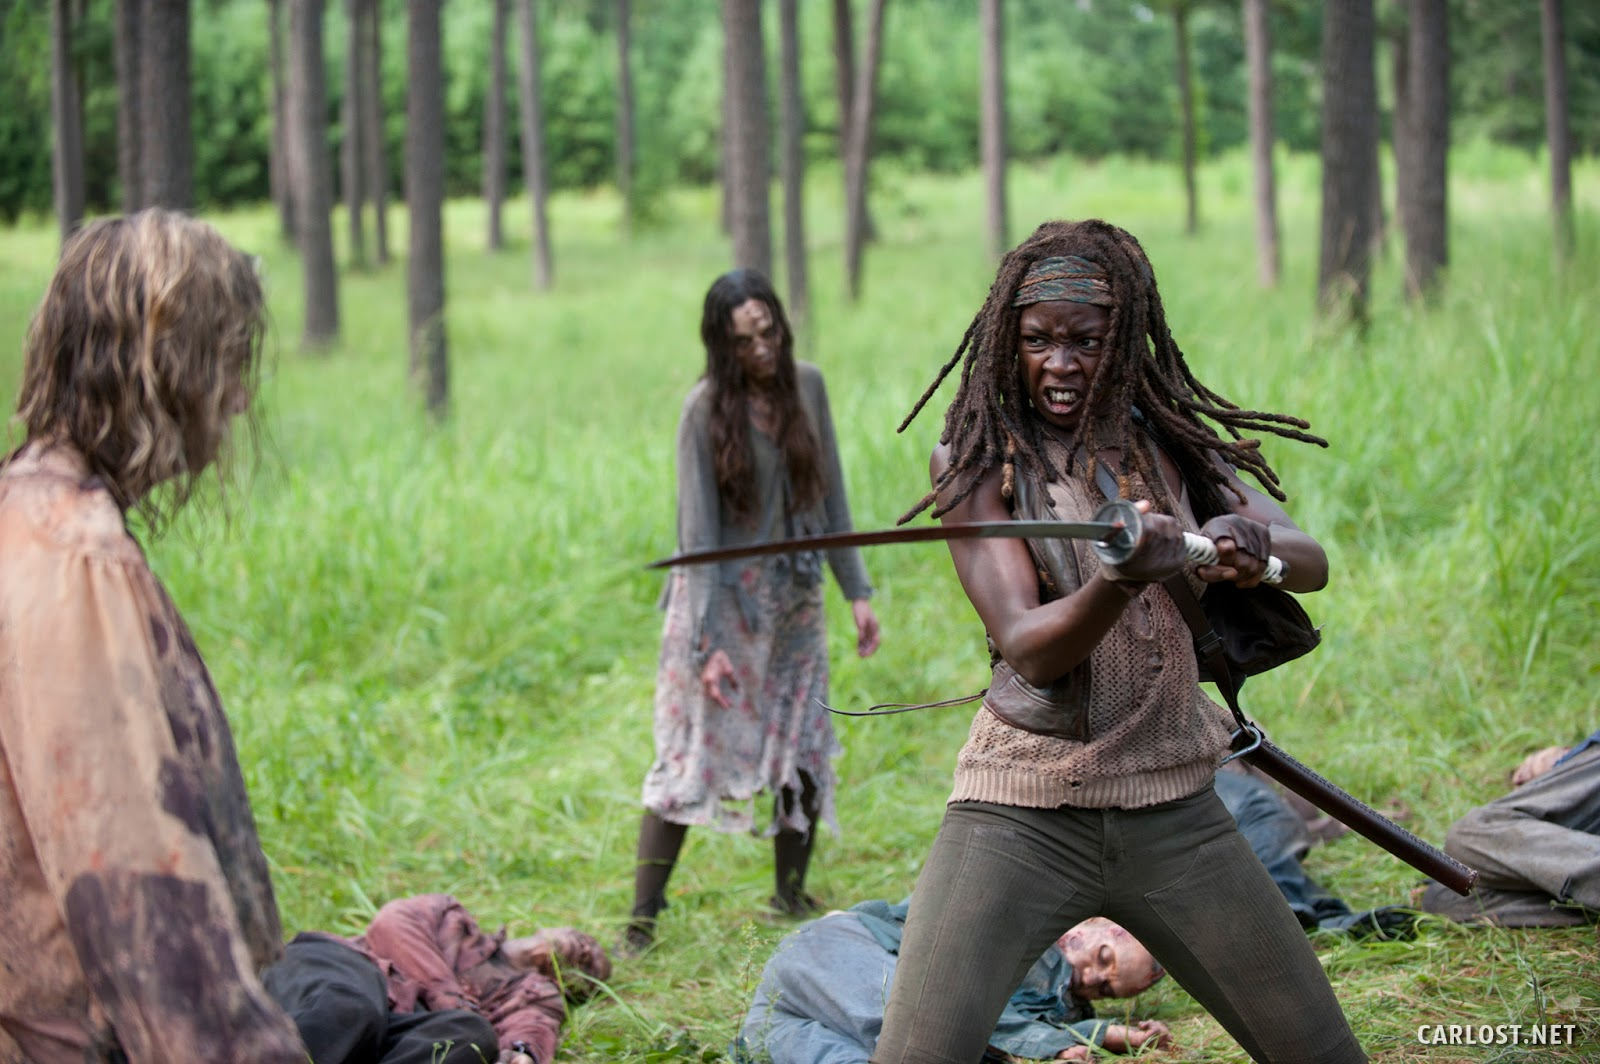 Michonne (Danai Gurira) matando algunos caminantes con su katana en The Walking Dead 4x09 After